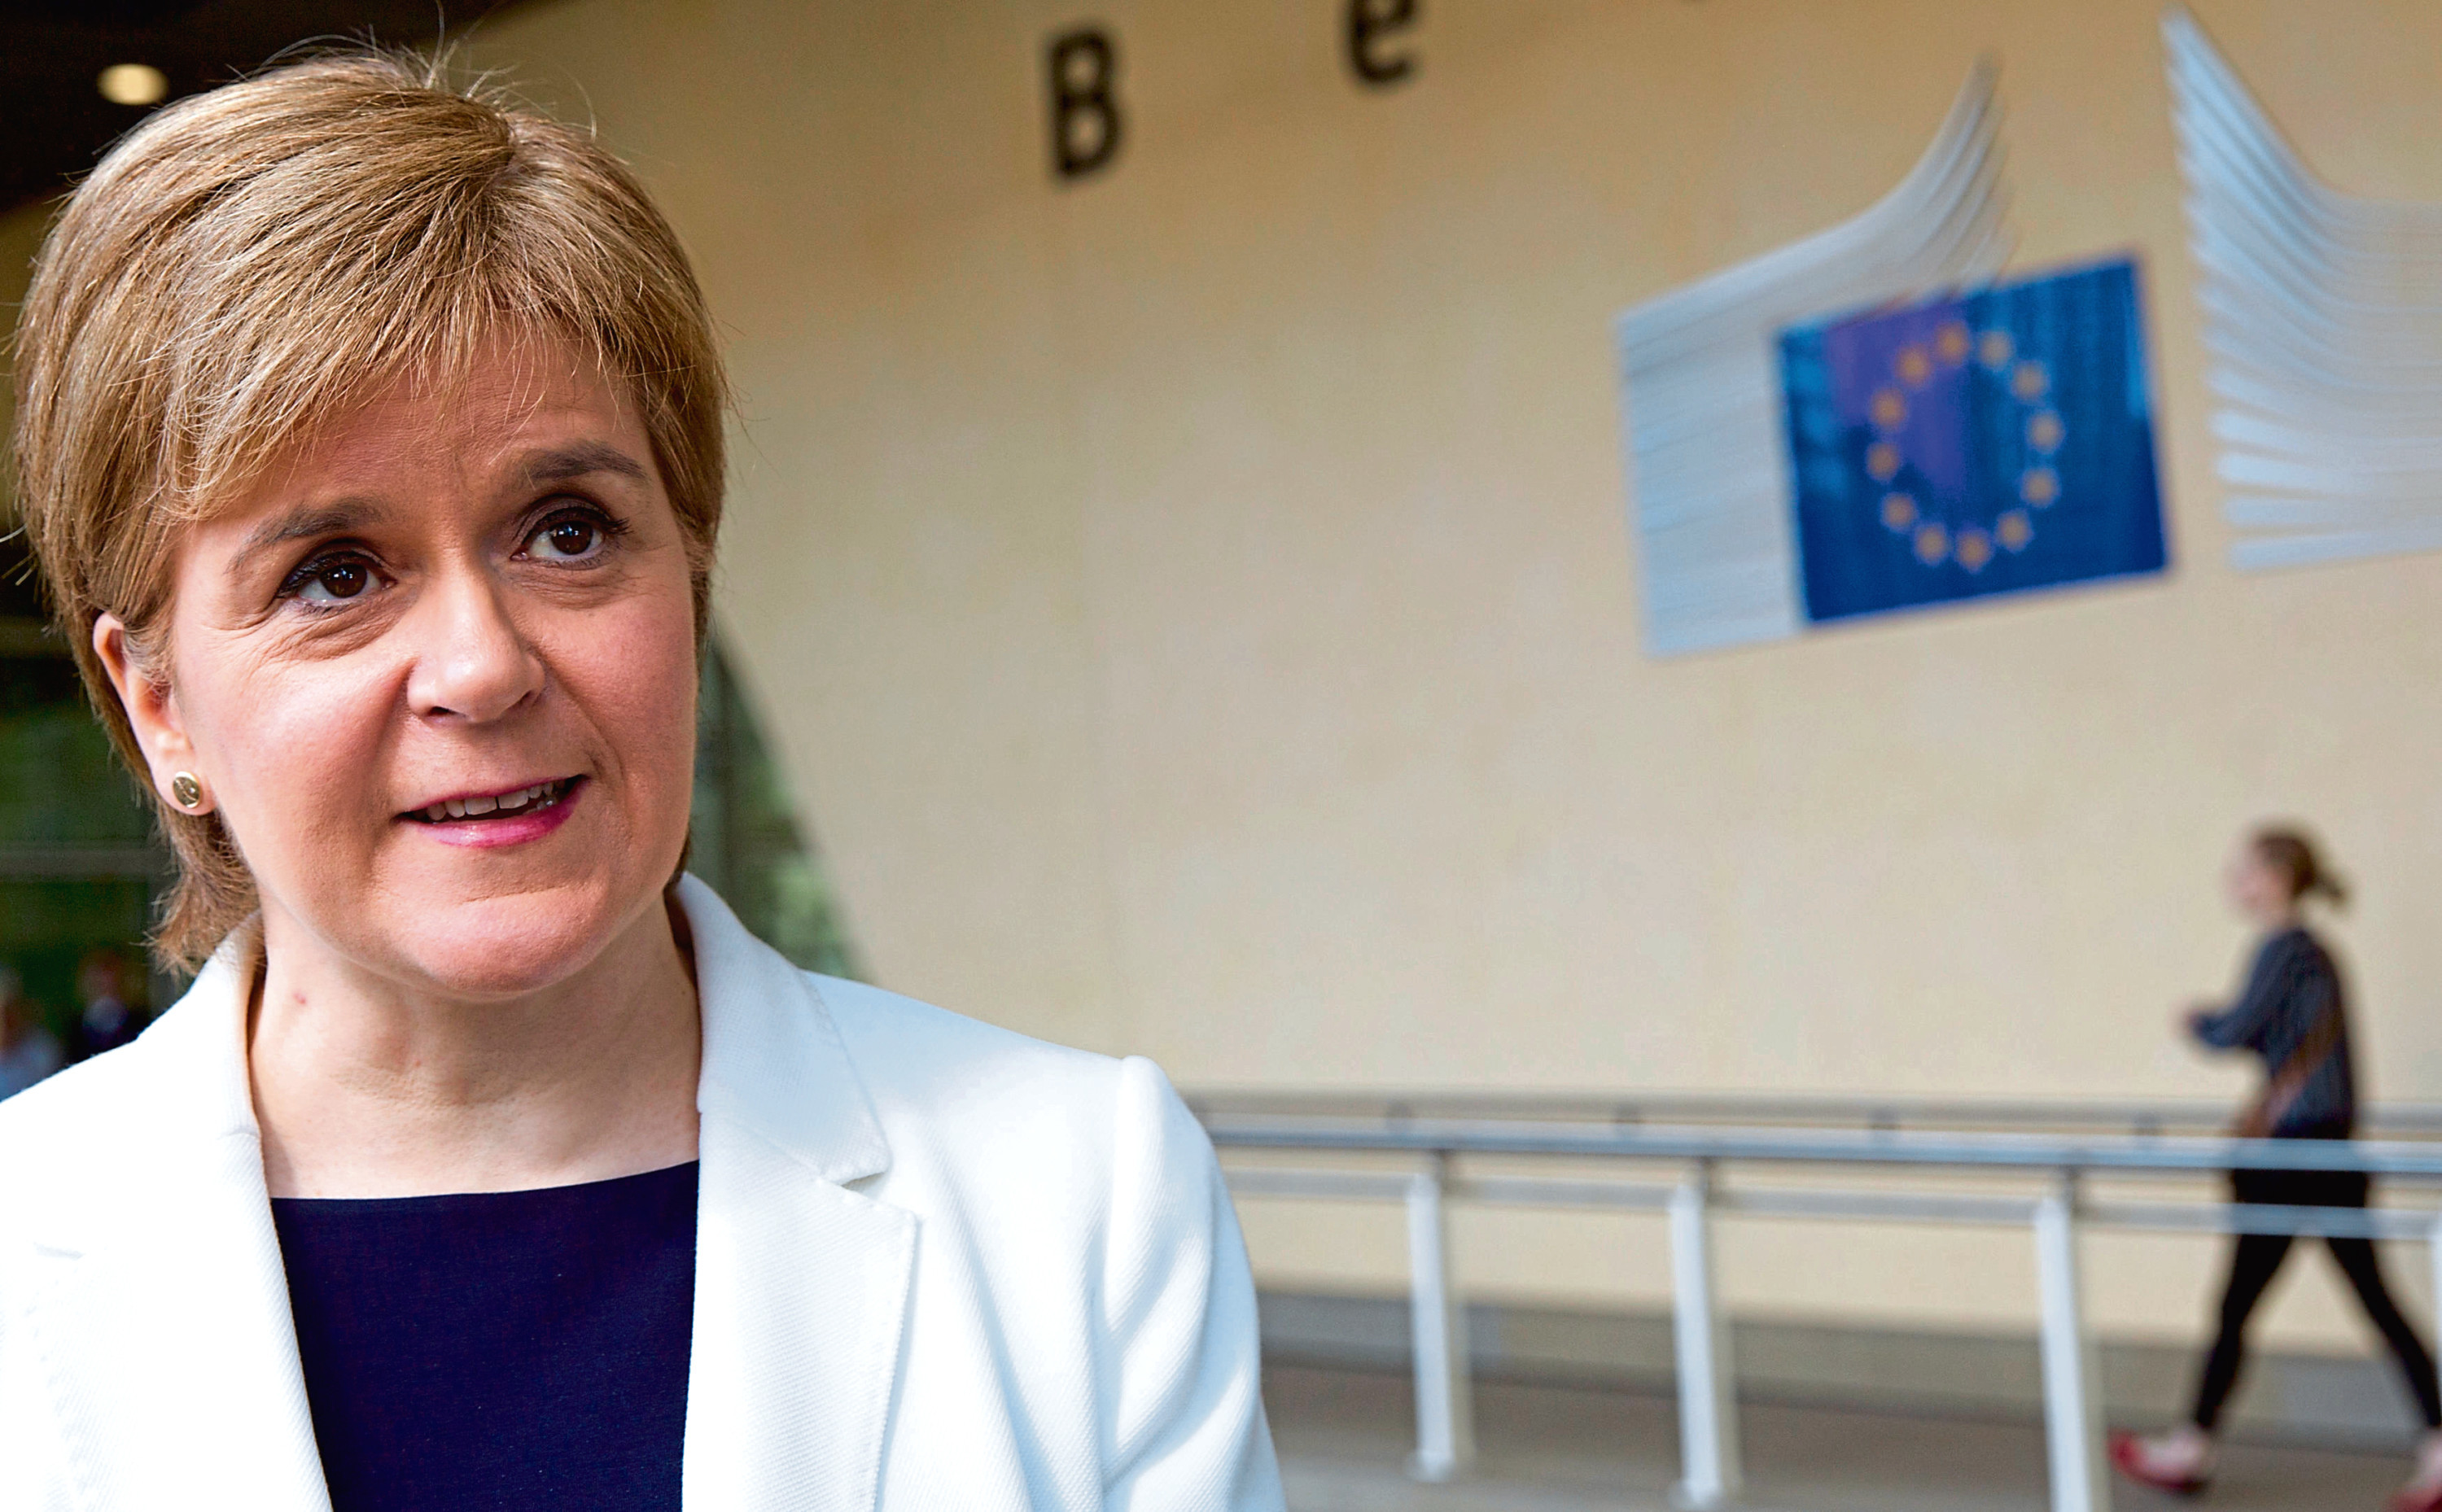 Scotland's Prime Minister Nicola Sturgeon speaks with the media outside EU headquarters in Brussels.